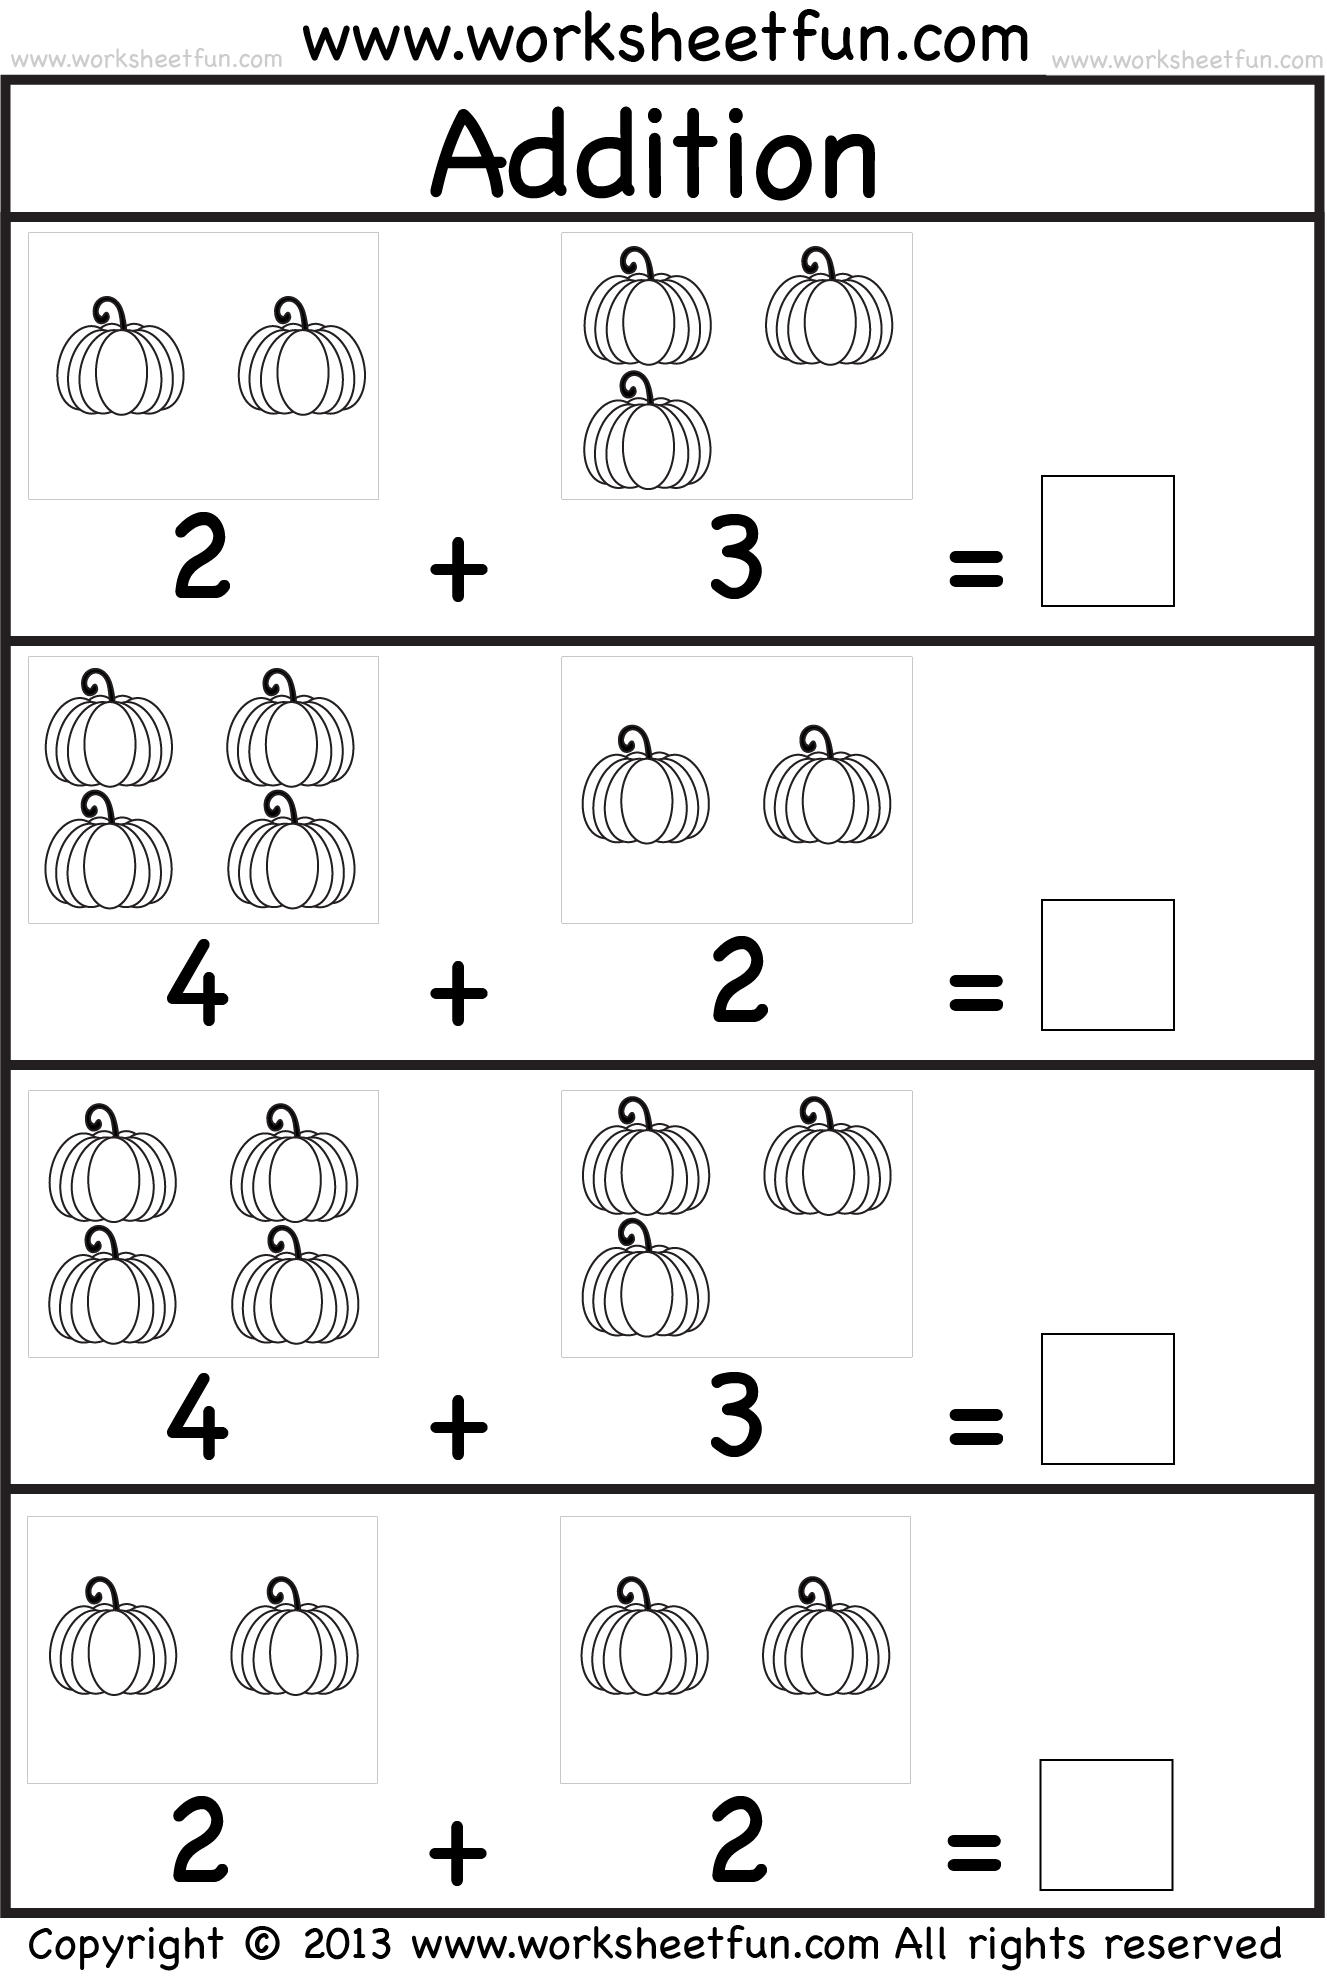 addition worksheet for kindergarten – Kindergarten Addition Worksheets Free